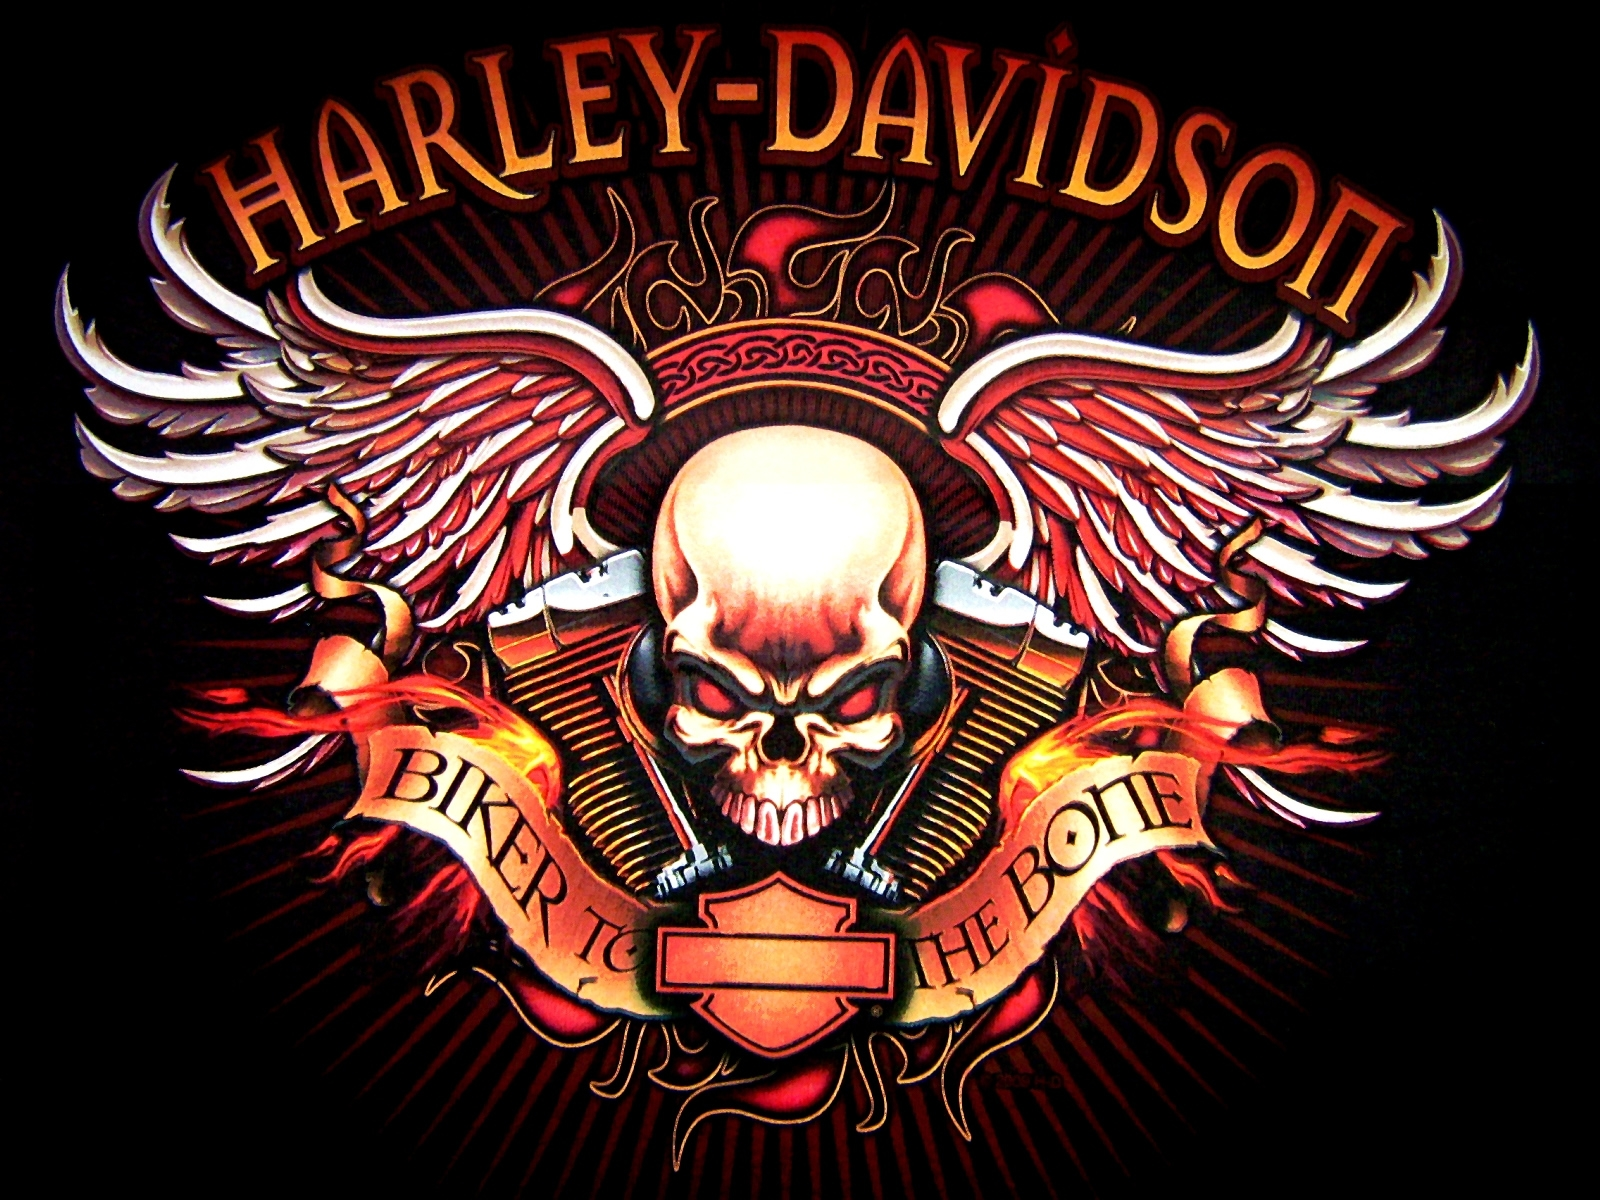 Harley Davidson logo skull bikes motorcycle wallpaper background